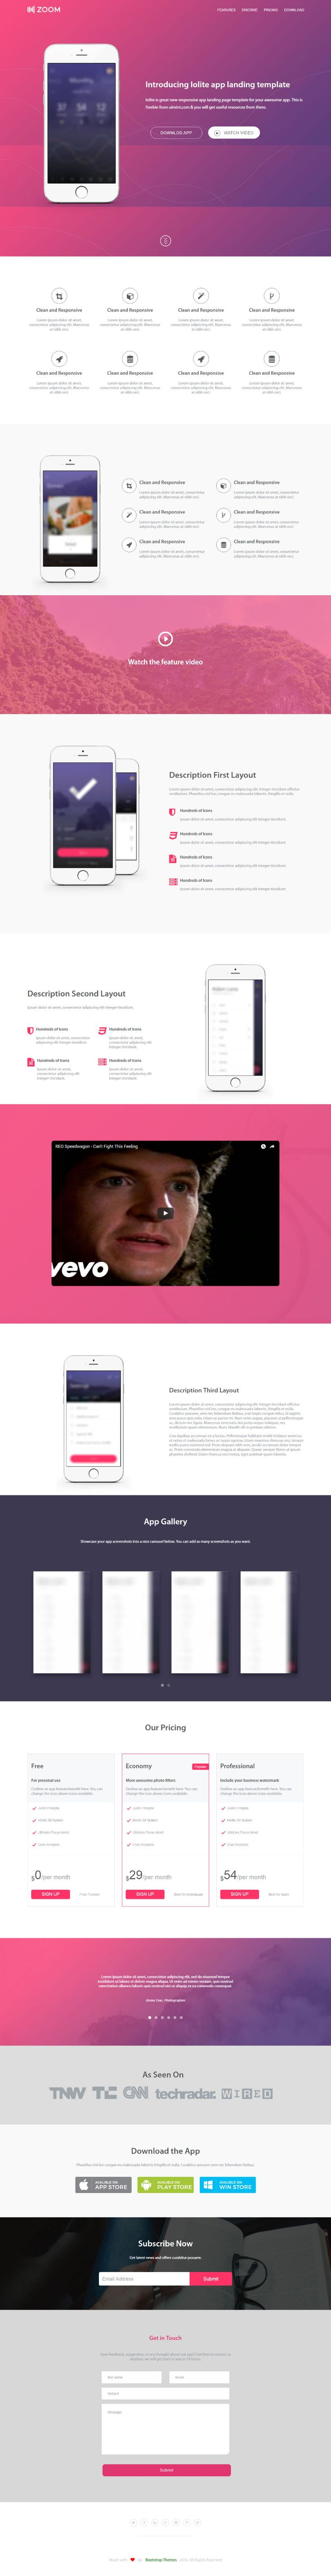 31 best Bootstrap Themes images on Pinterest | Free html website ...